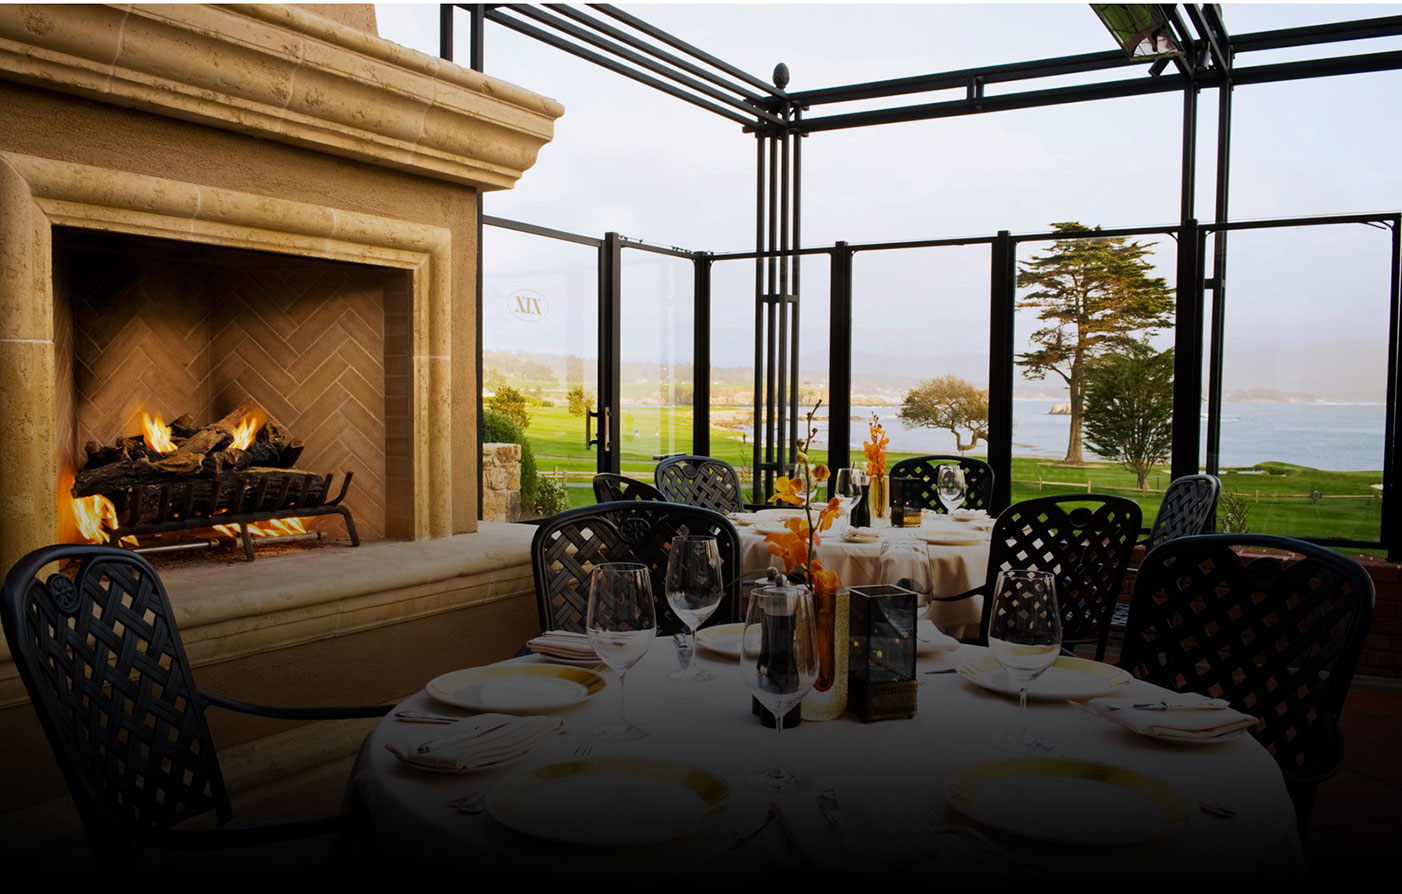 Dining:      The Lodge at Pebble Beach  in Pebble Beach